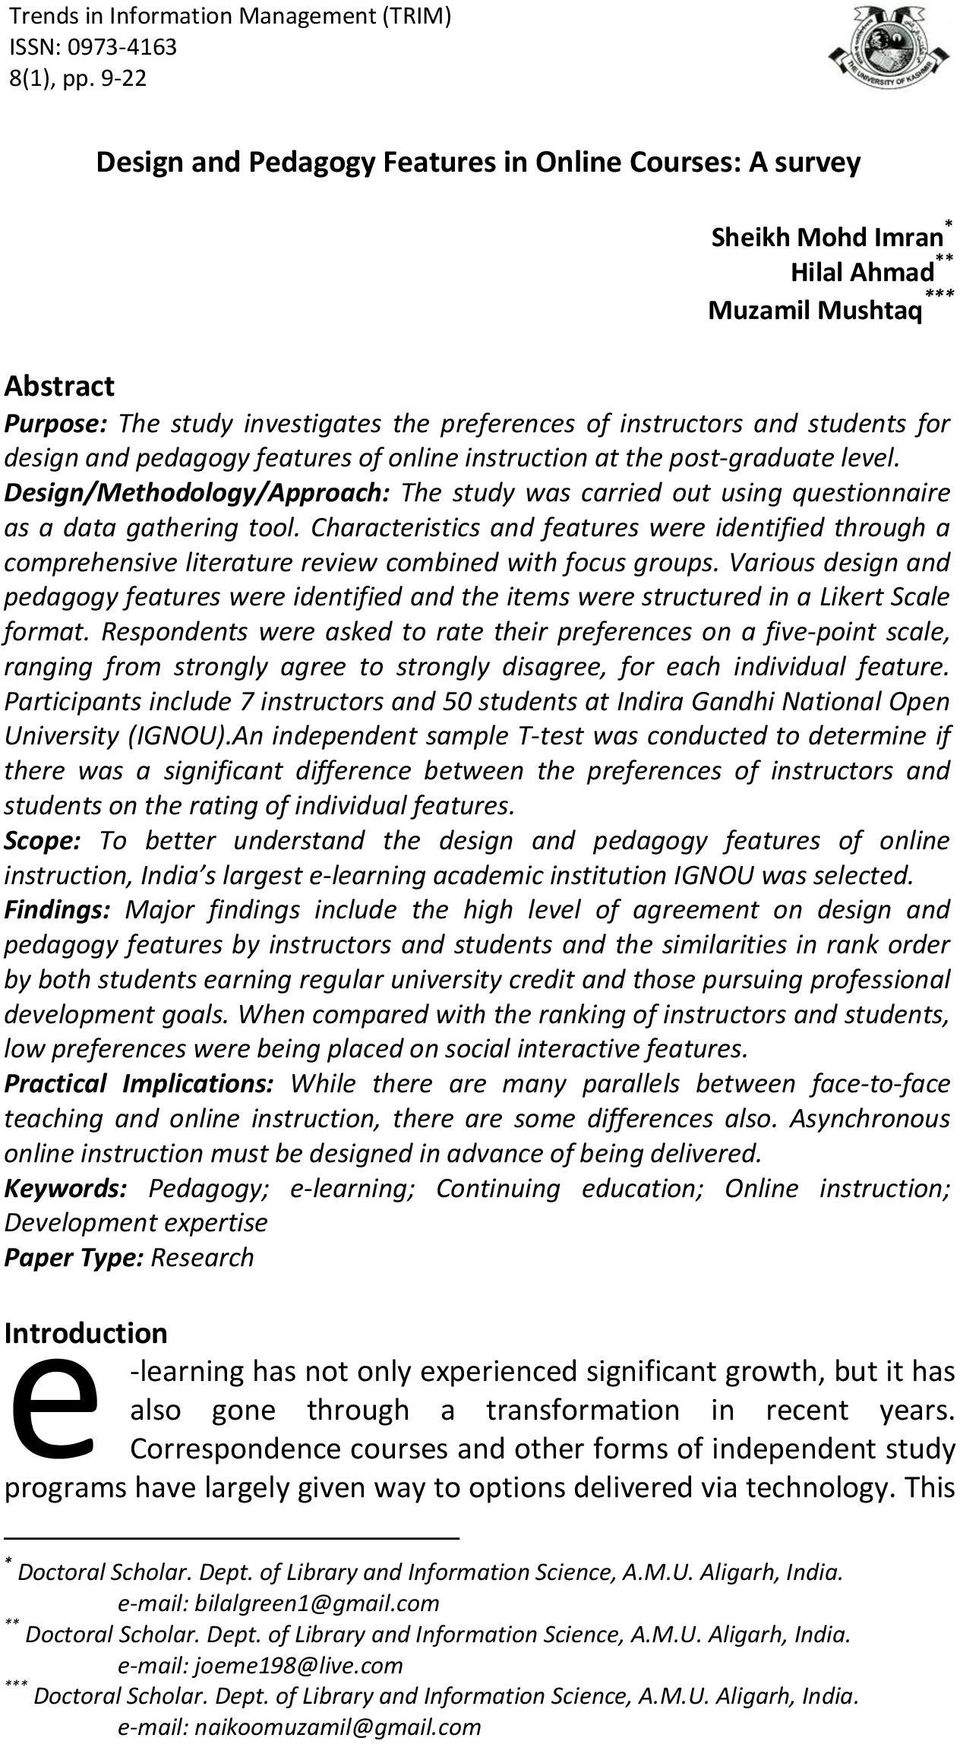 students for design and pedagogy features of online instruction at the post-graduate level. Design/Methodology/Approach: The study was carried out using questionnaire as a data gathering tool.